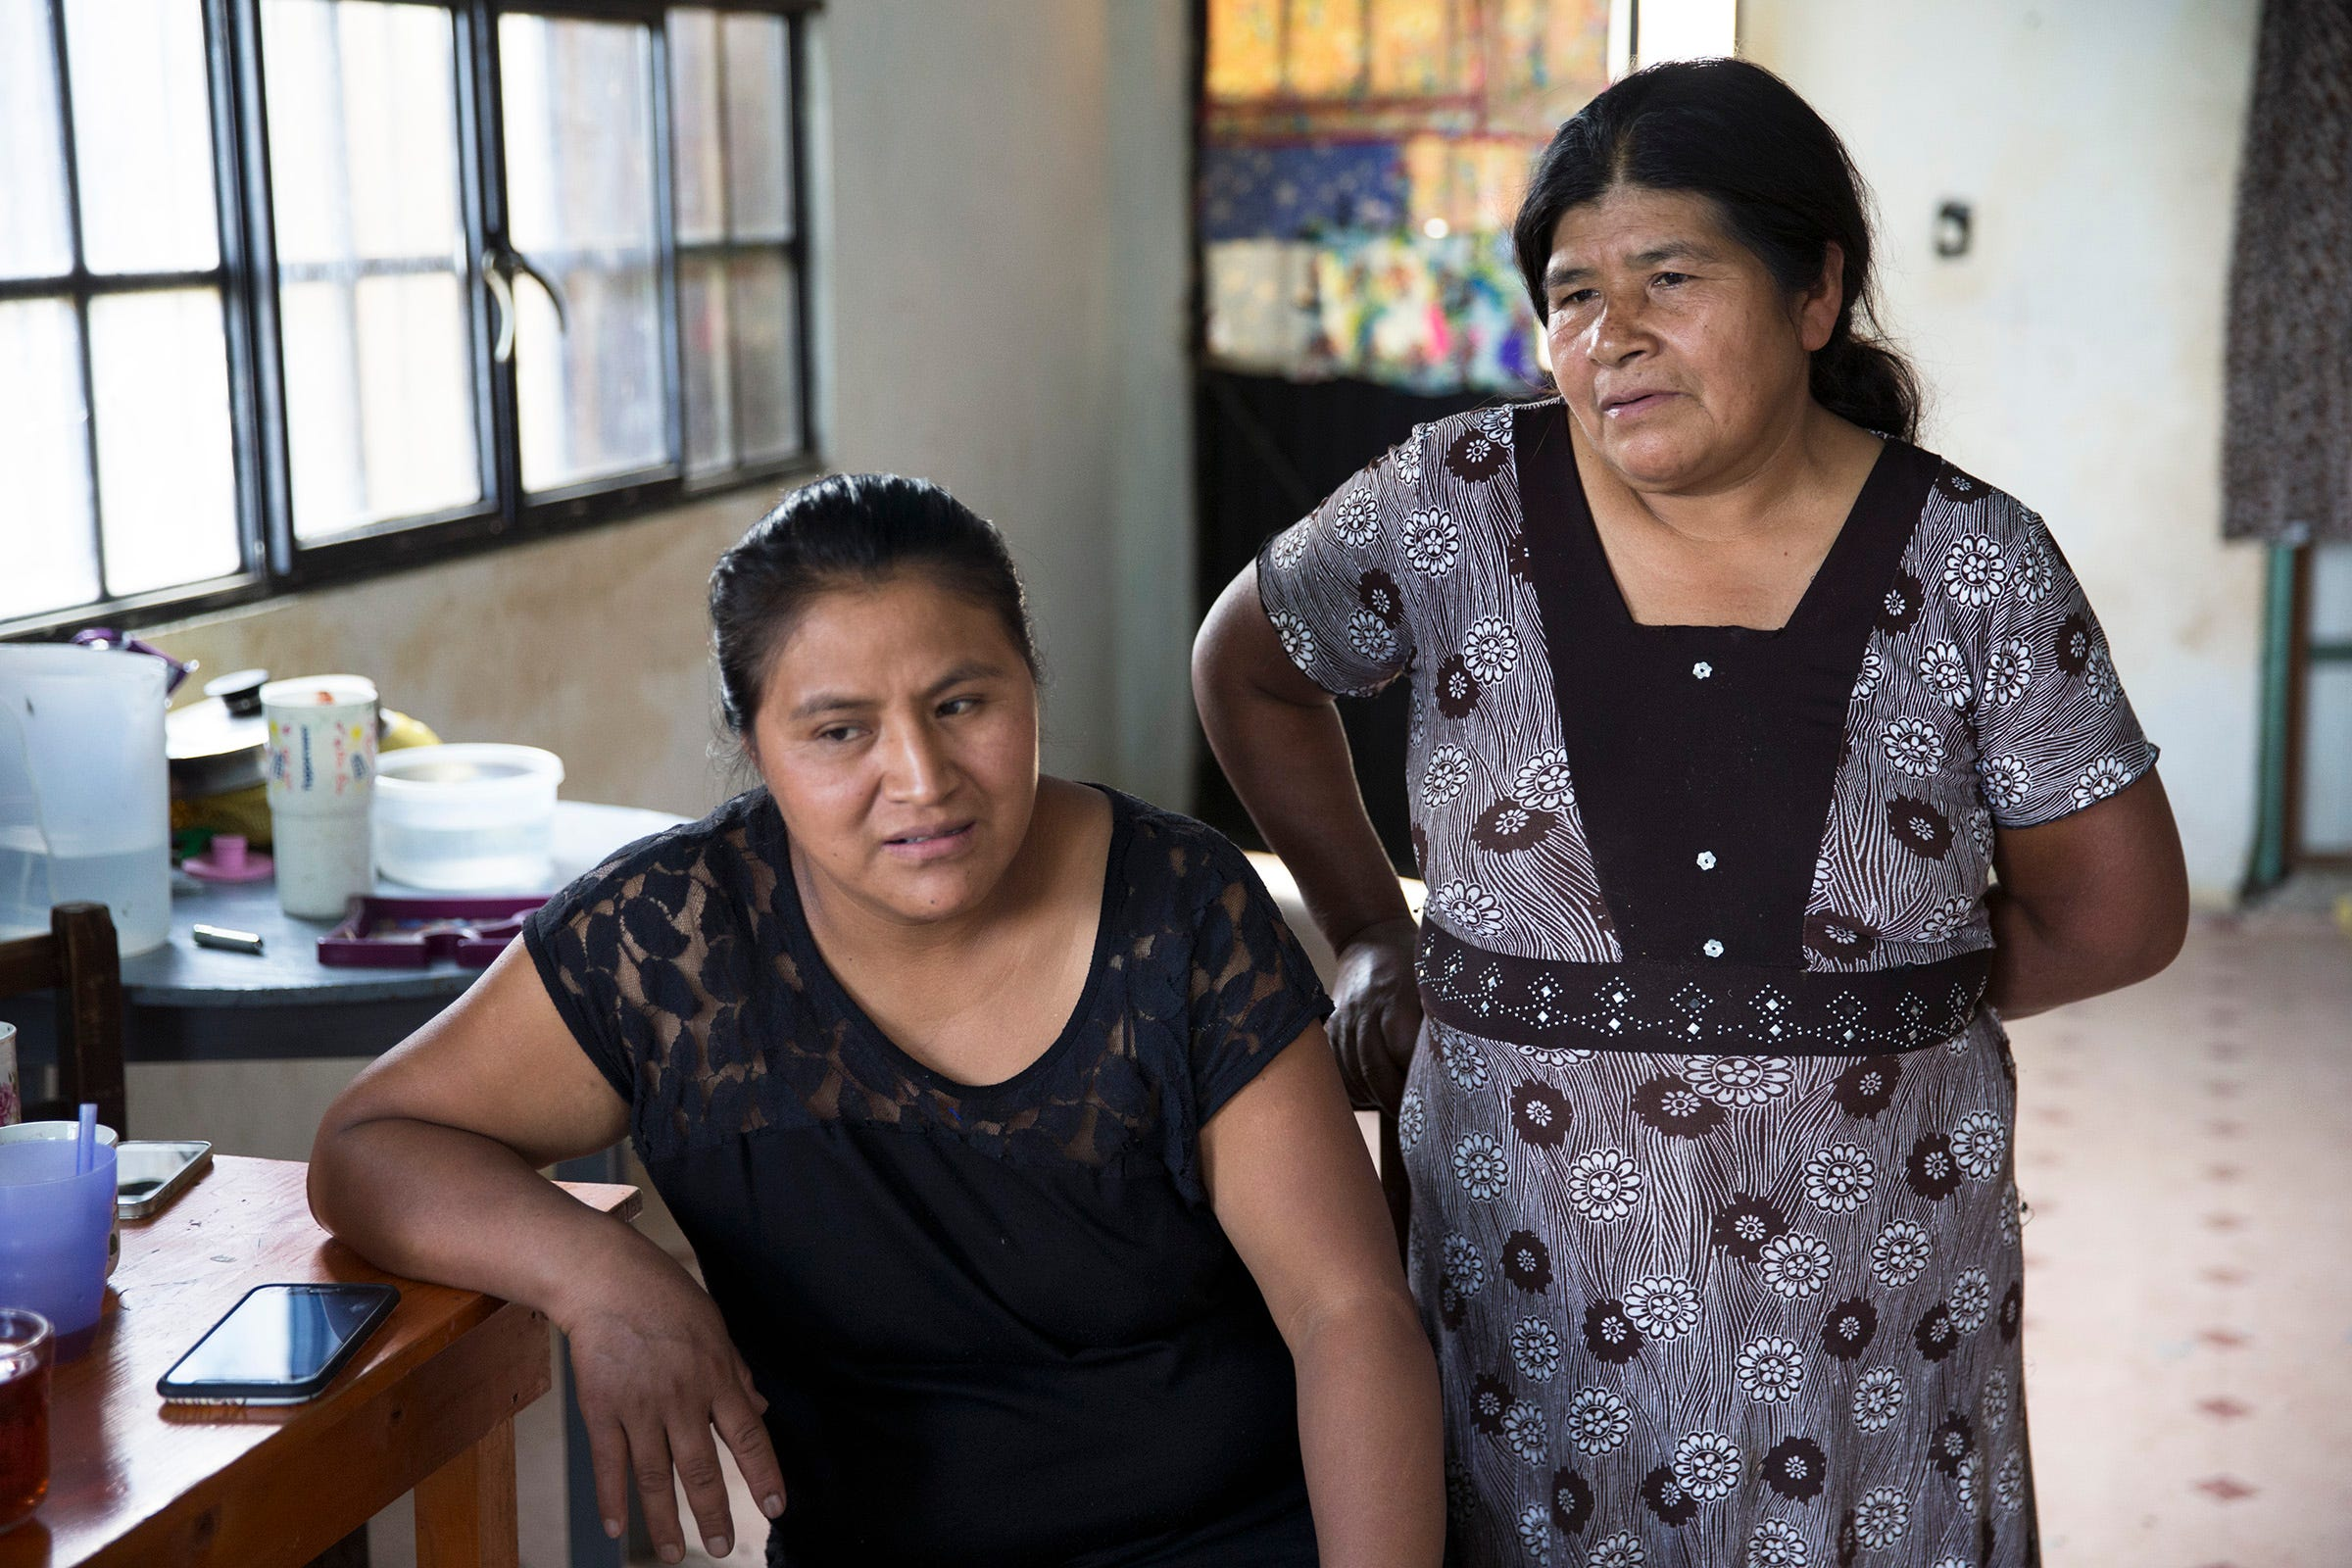 Roberto Tecpile's wife, Verónica Montalvo, and his mother, Concepciona Acahua, in the home that Tecpile's family is building in Astacinga, México, thanks to his work at  a Wisconsin dairy farm.